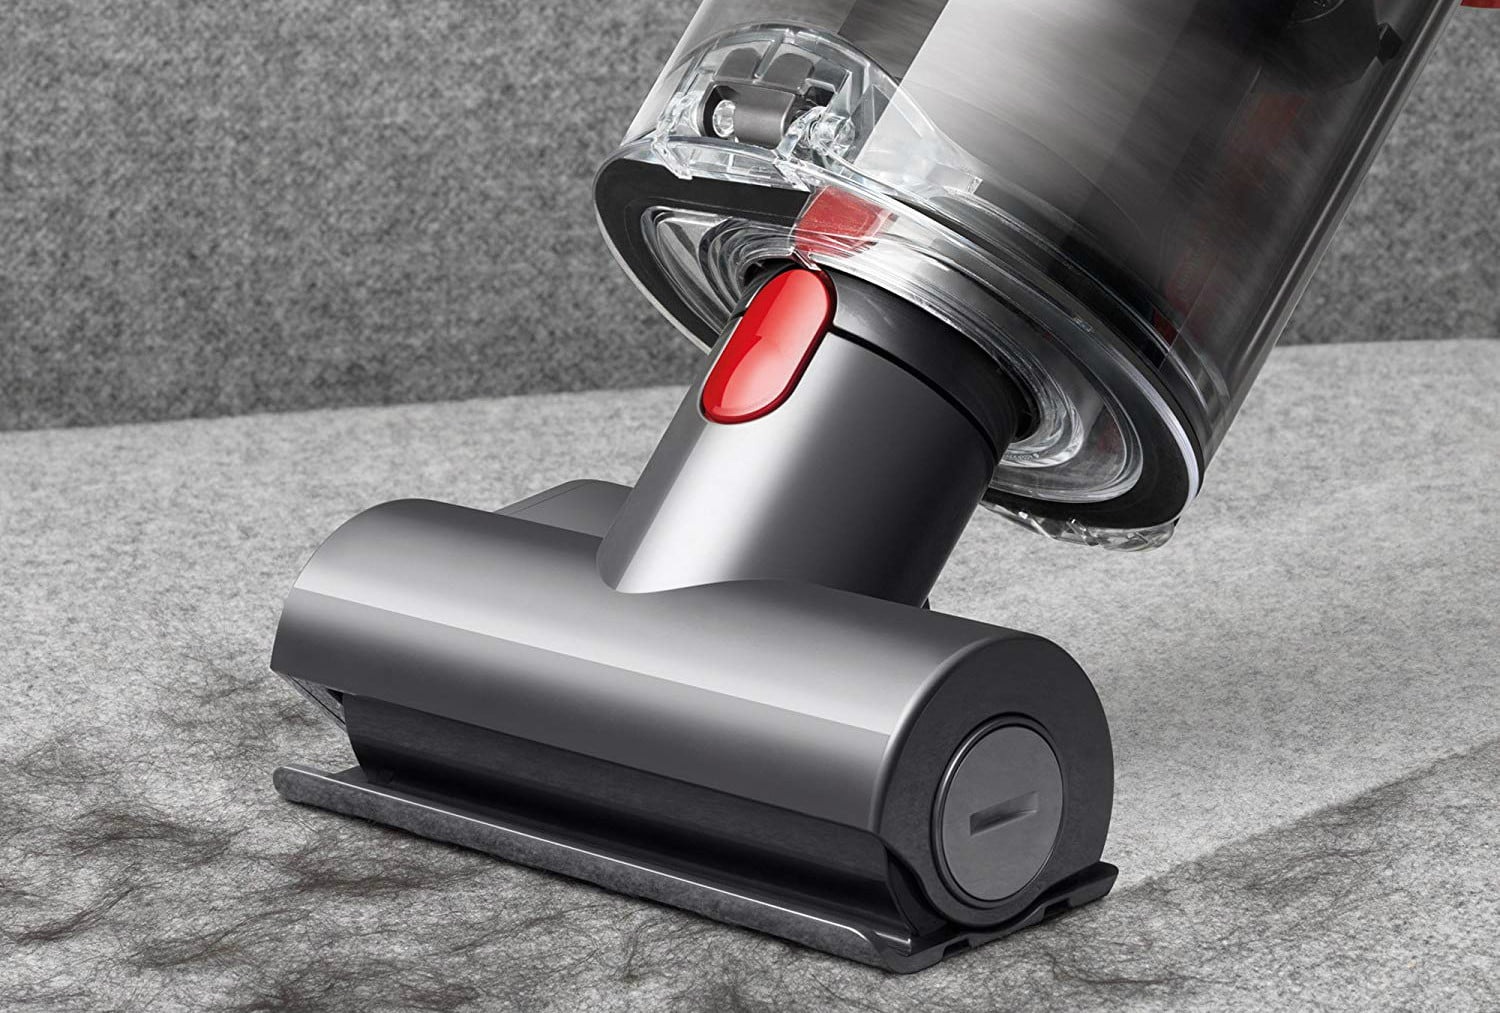 Best Lightweight Vacuum 2020 The Best Dyson Vacuums for 2019 | Digital Trends